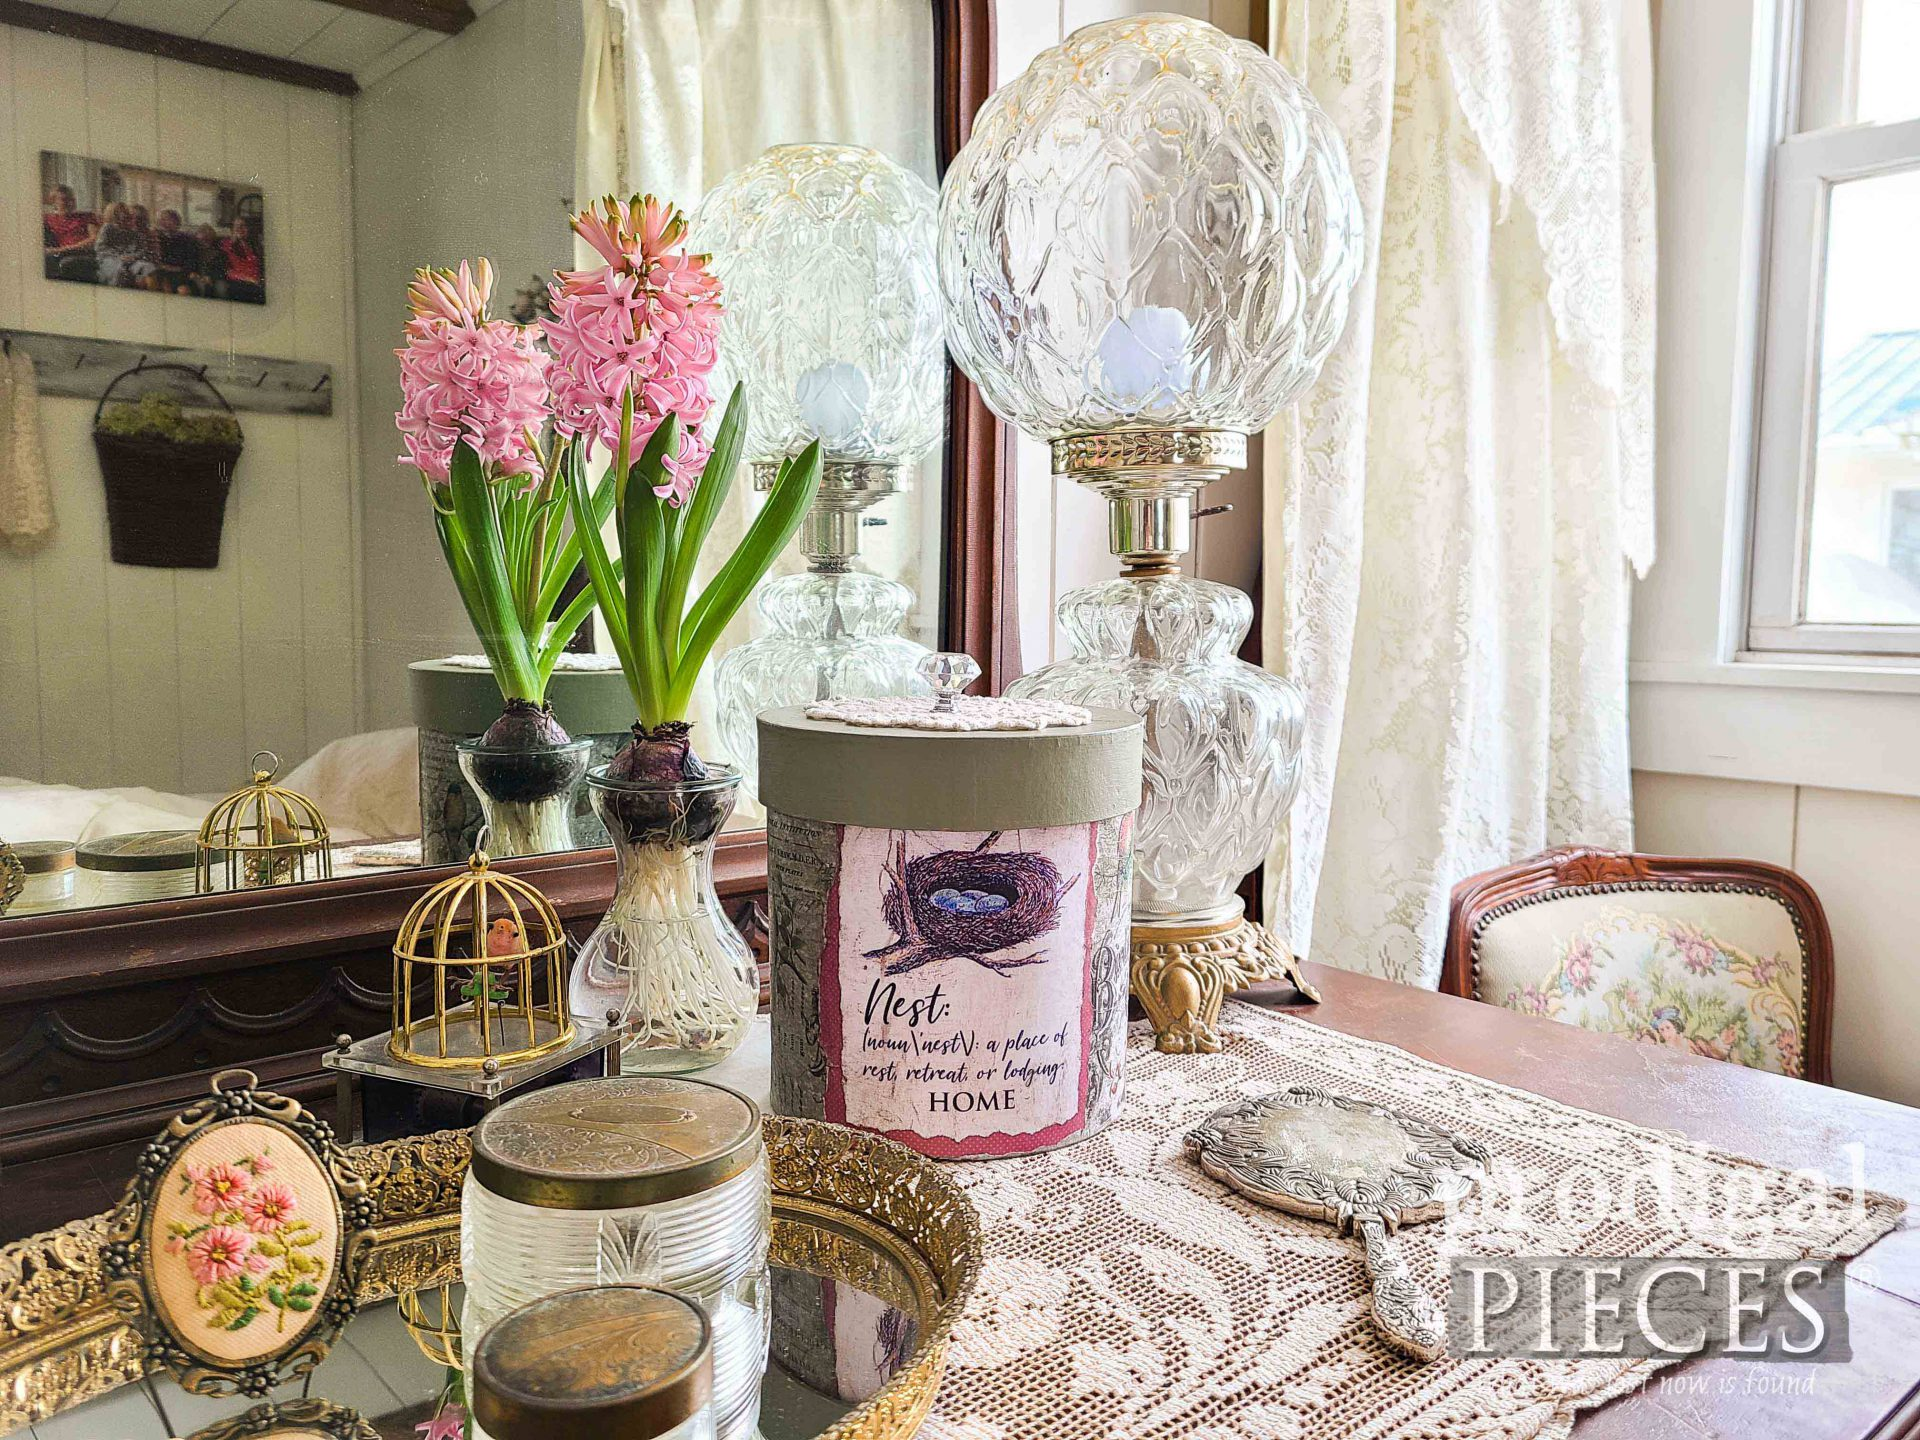 Vintage Style Home Decor in Bedroom by Larissa of Prodigal Pieces | prodigalpieces.com #prodigalpieces #vintage #home #homedecor #spring